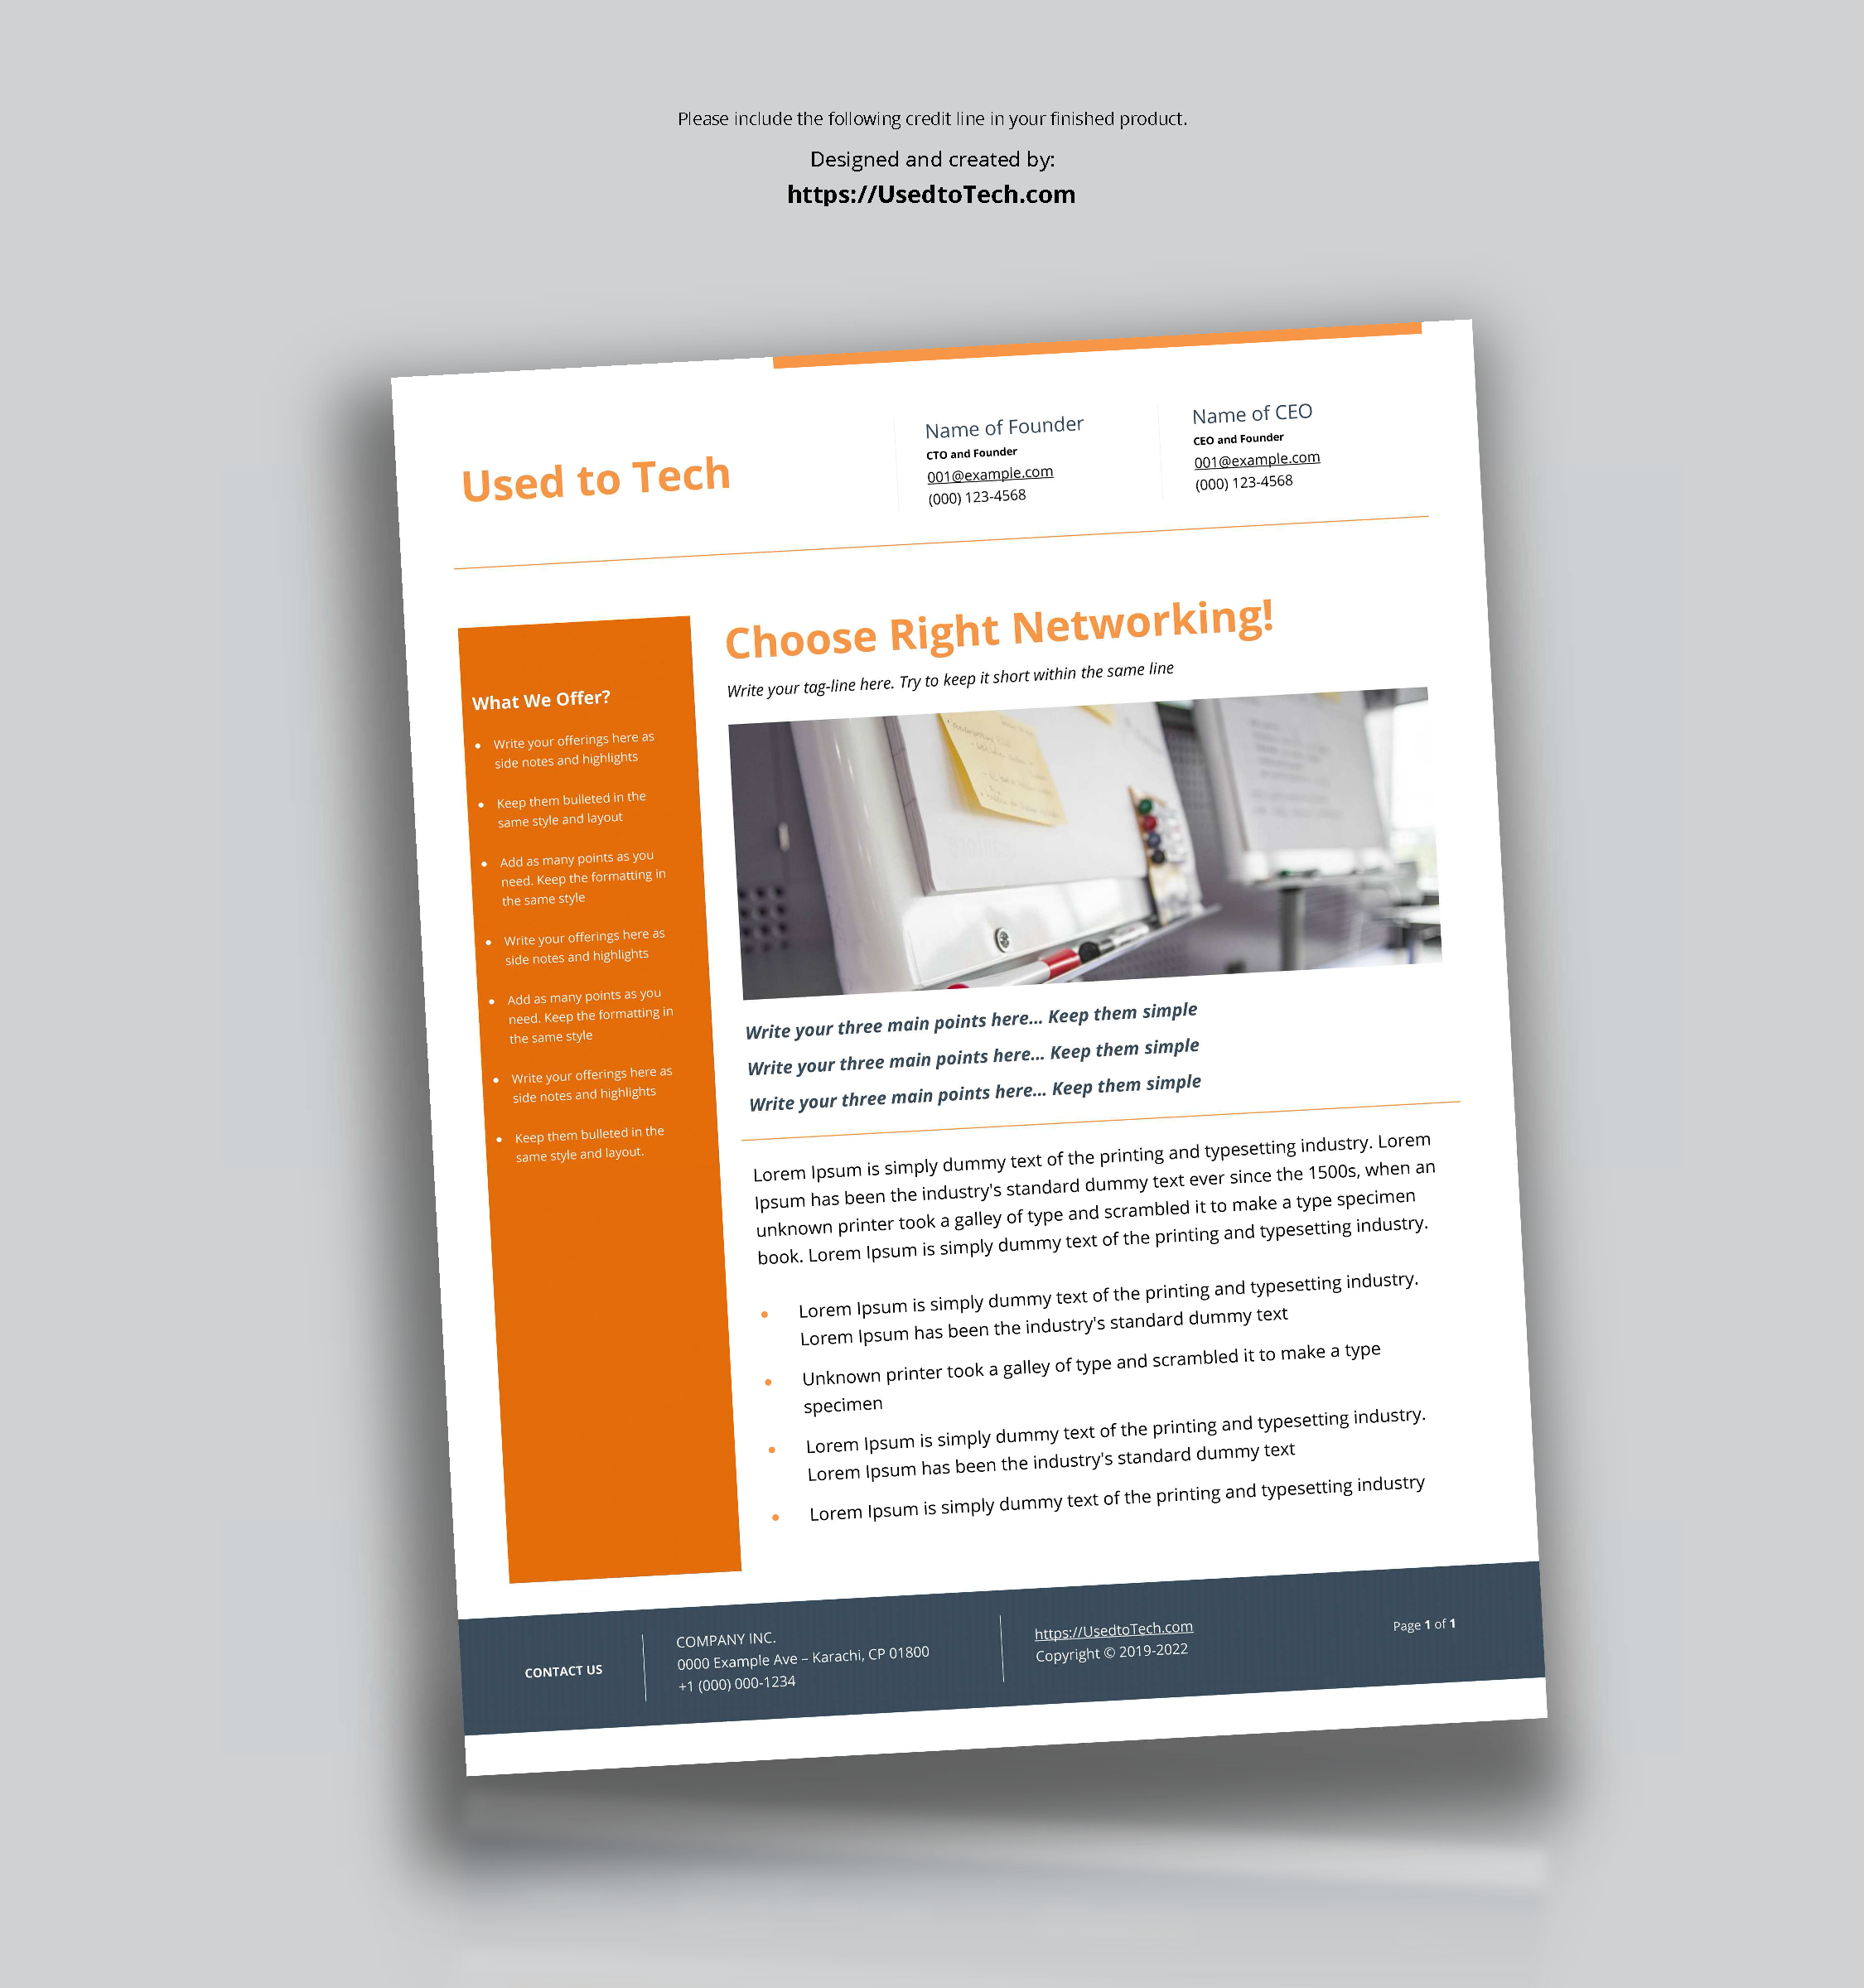 Modern Flyer Design In Microsoft Word Free – Used To Tech Within Templates For Flyers In Word